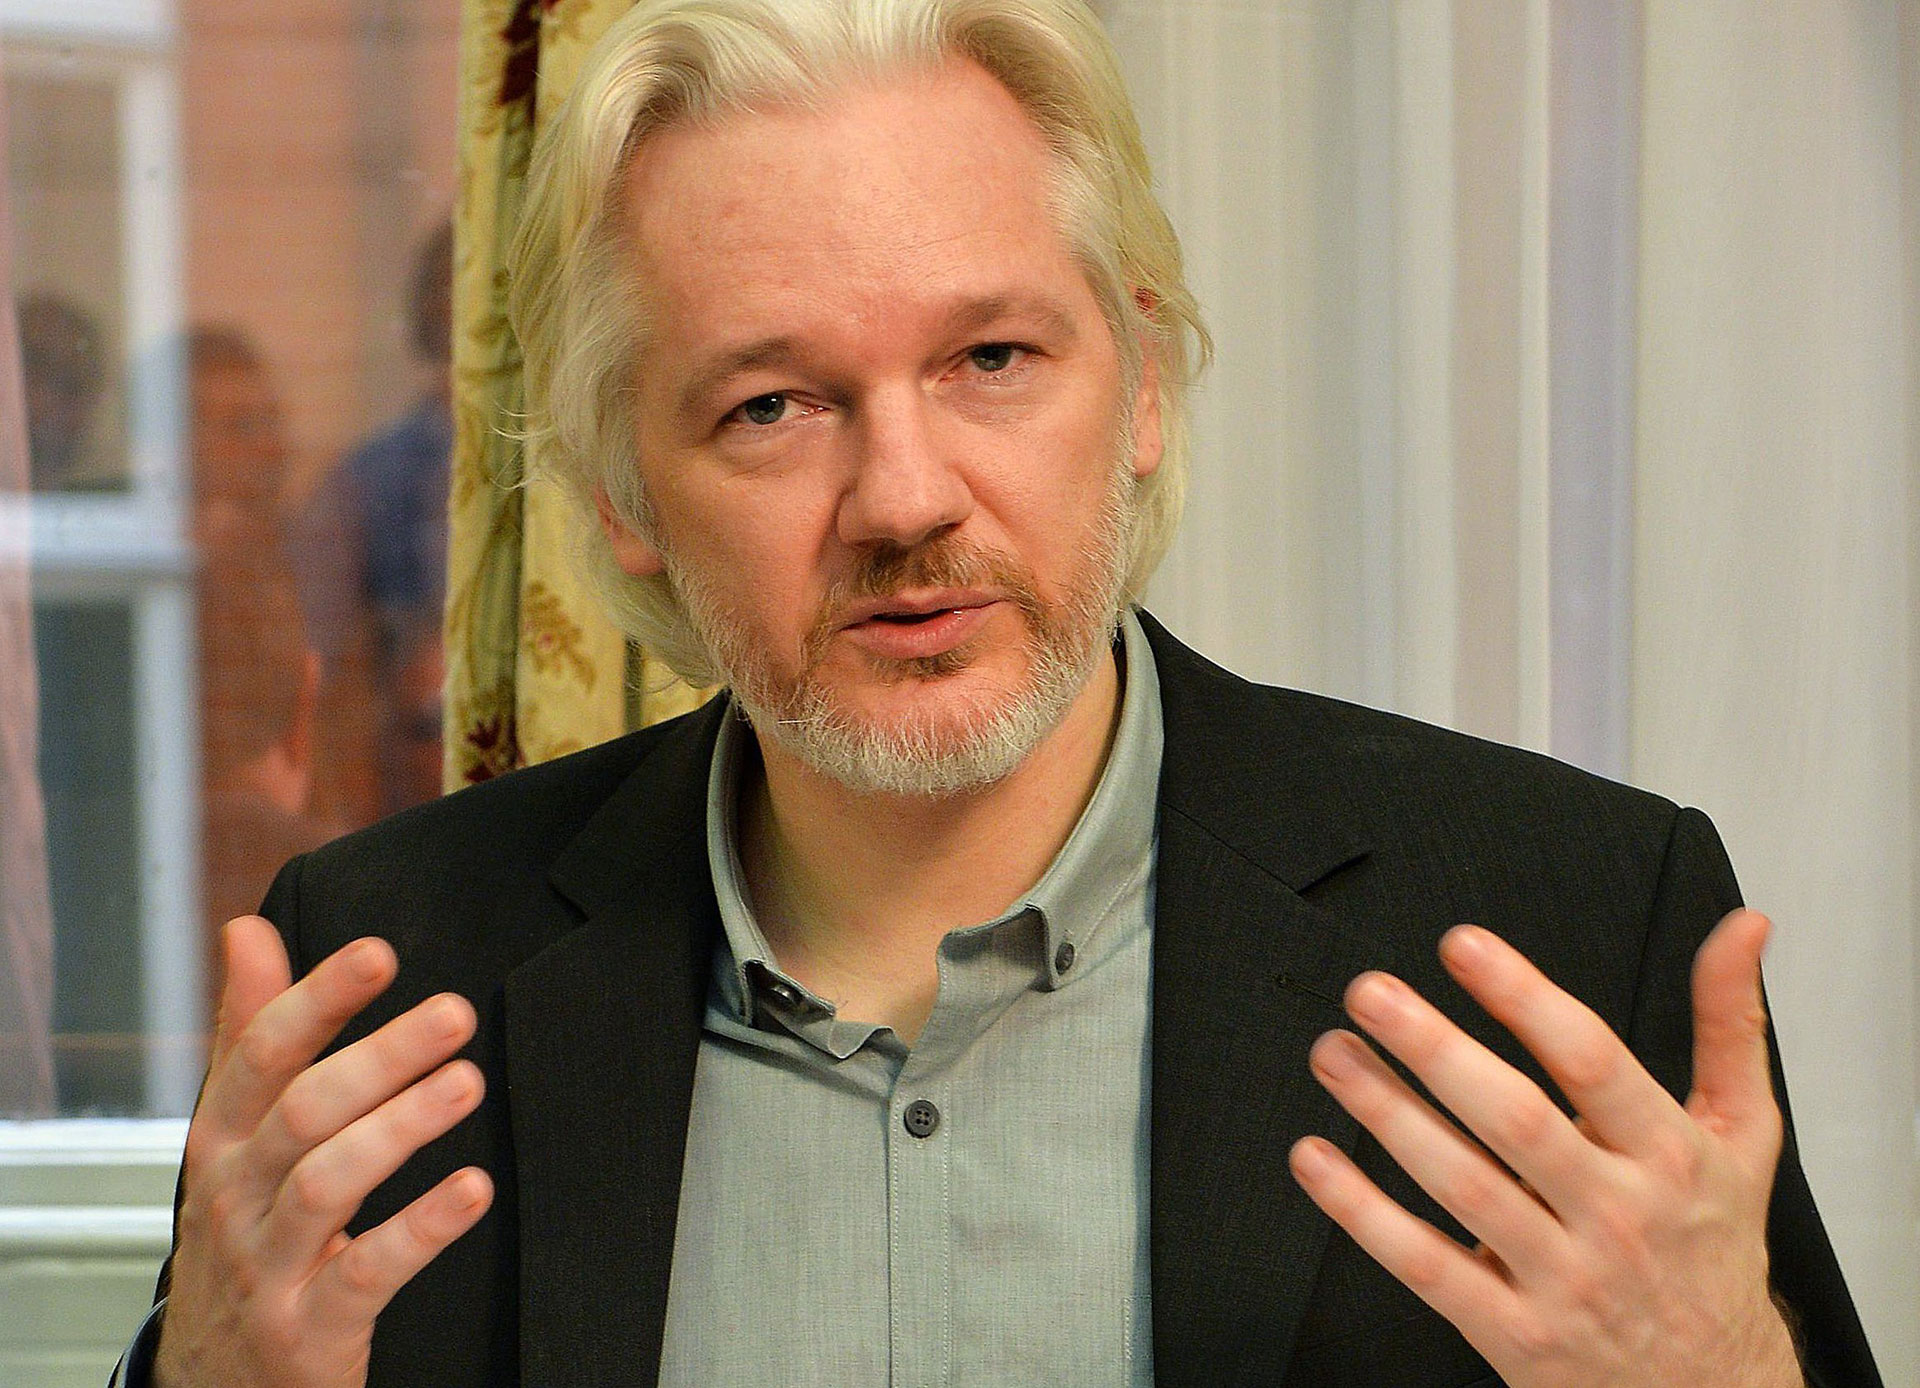 Julian Assange | J Stillwell / AFP